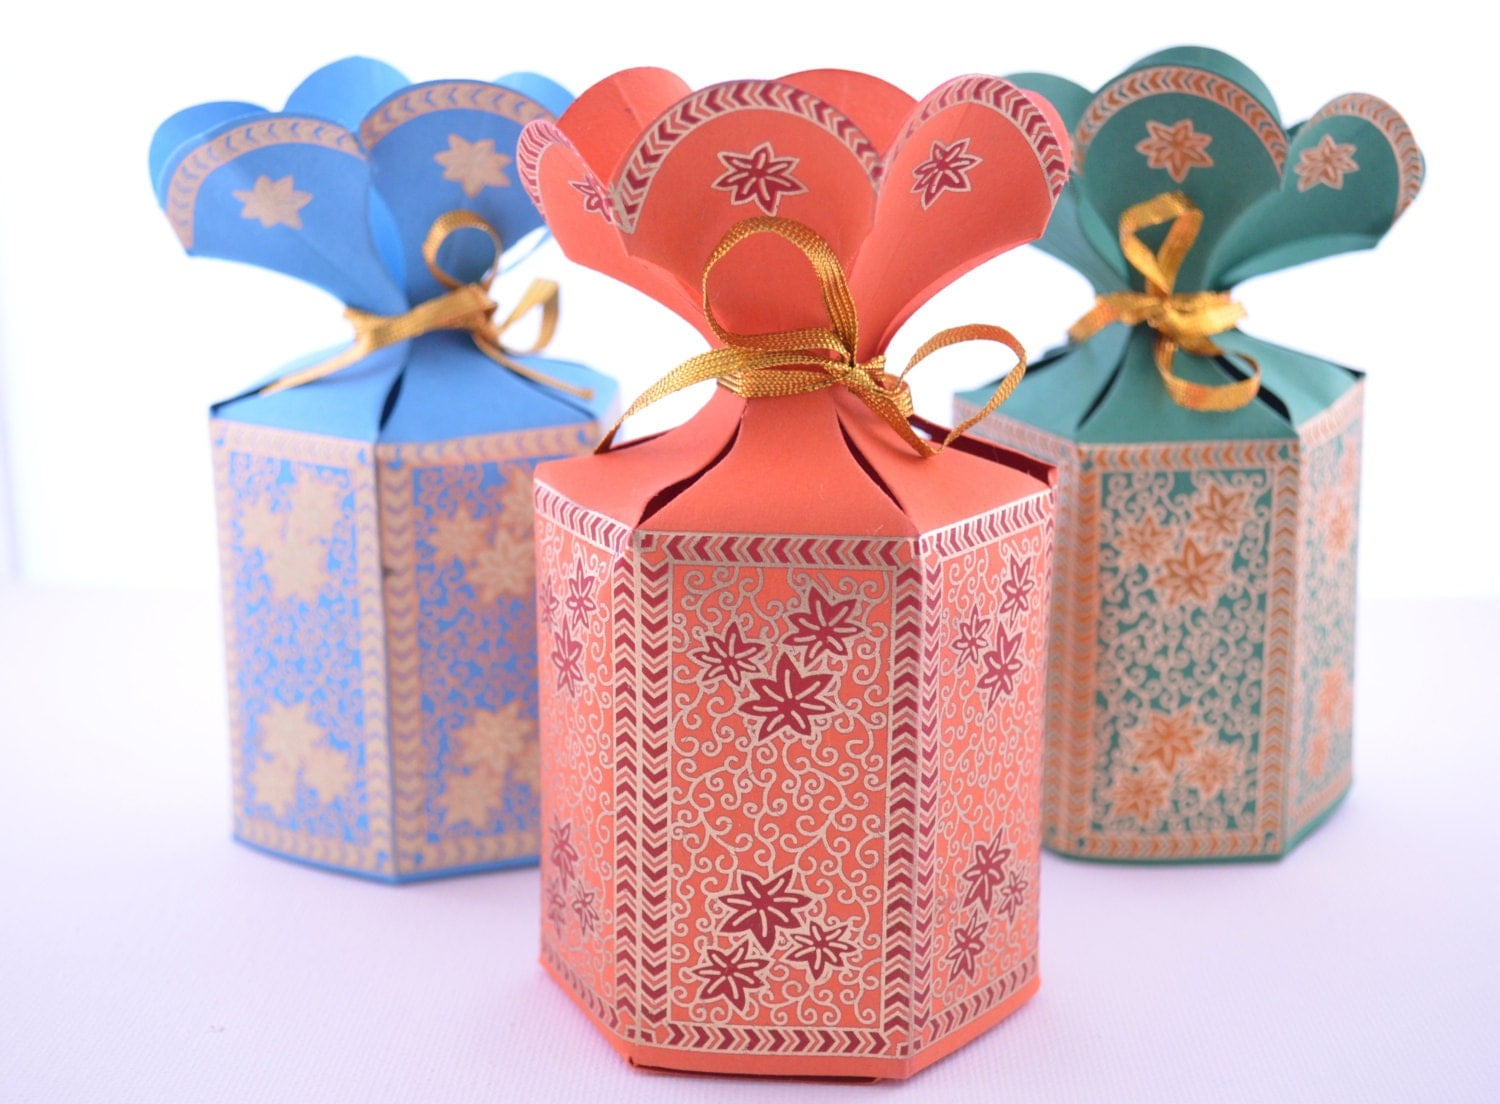 Indian Wedding Gift Bags For Guests : Favor Gift Box with Flower Top Wedding Favor Box by PenandFavor